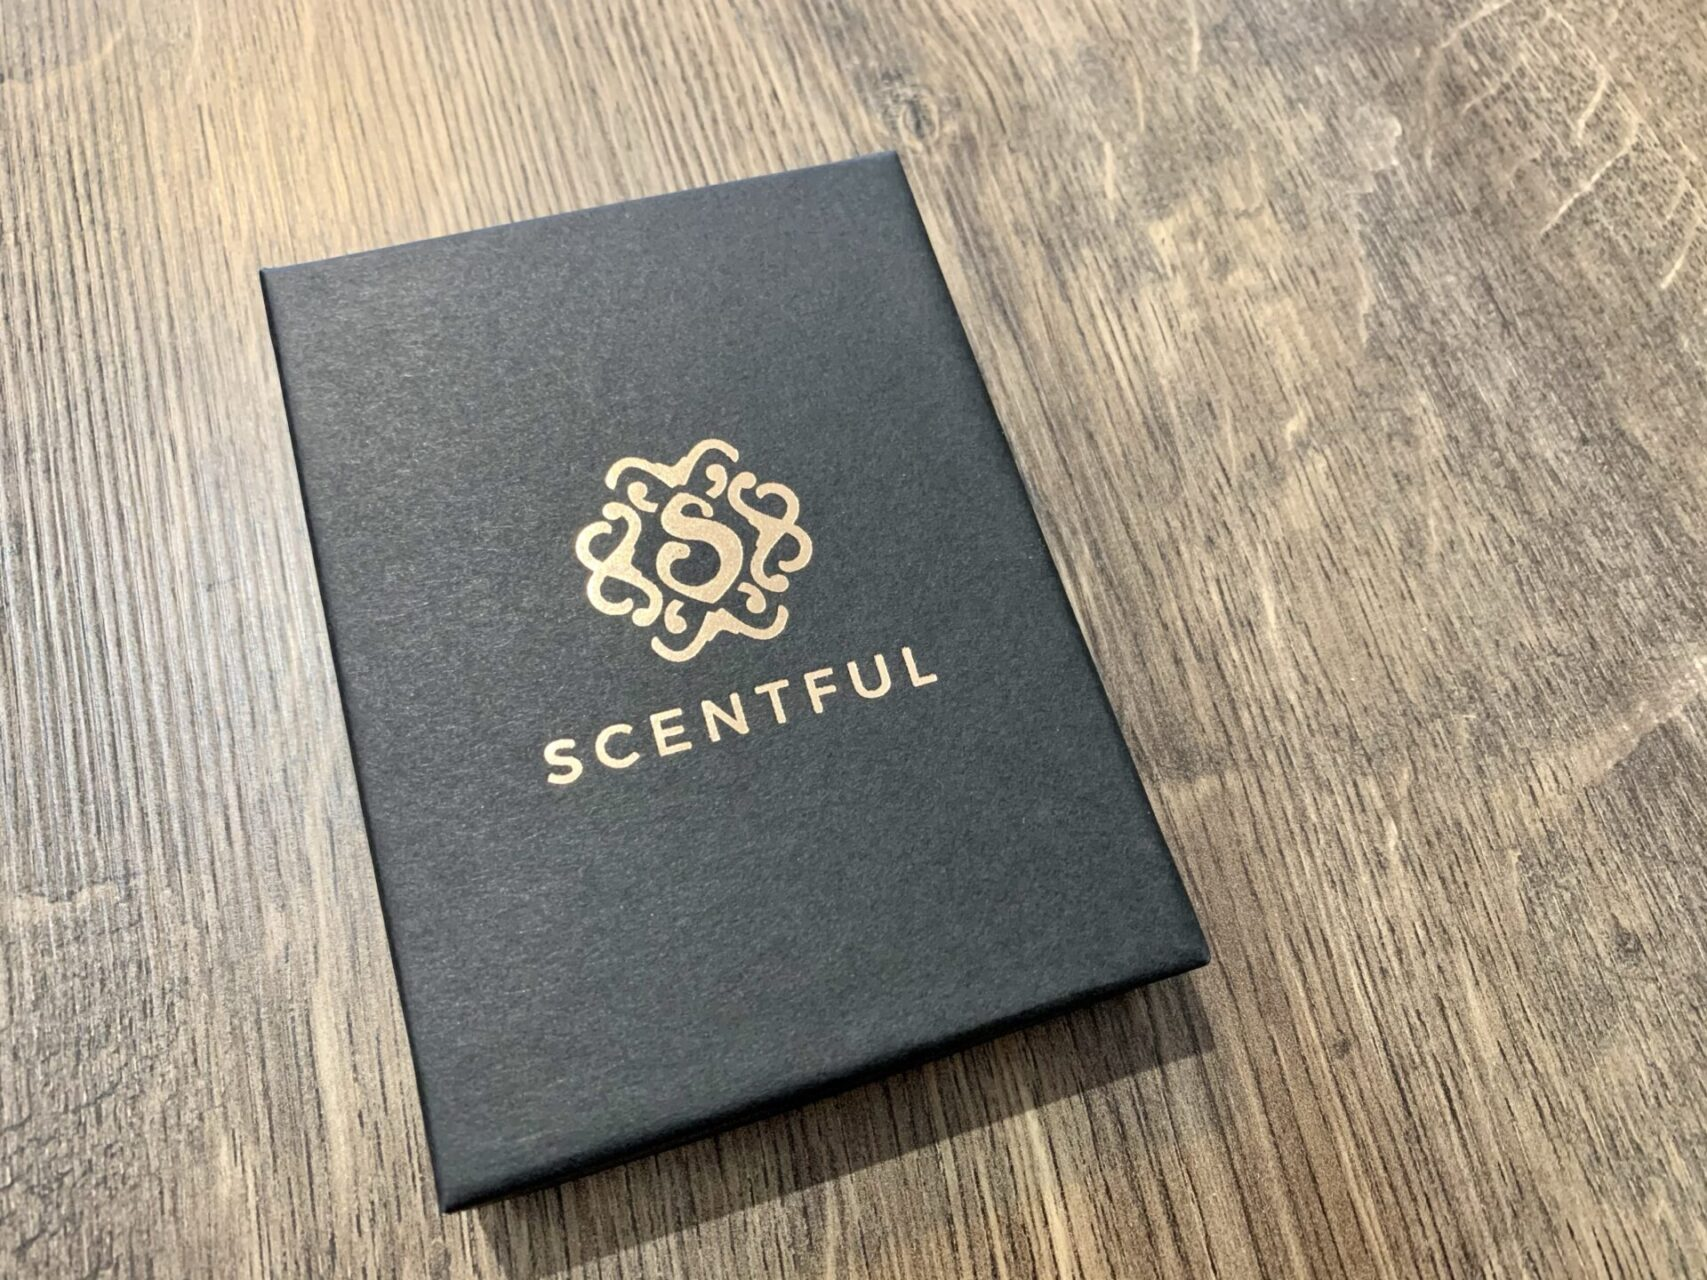 Scentful men's aftershave delivery